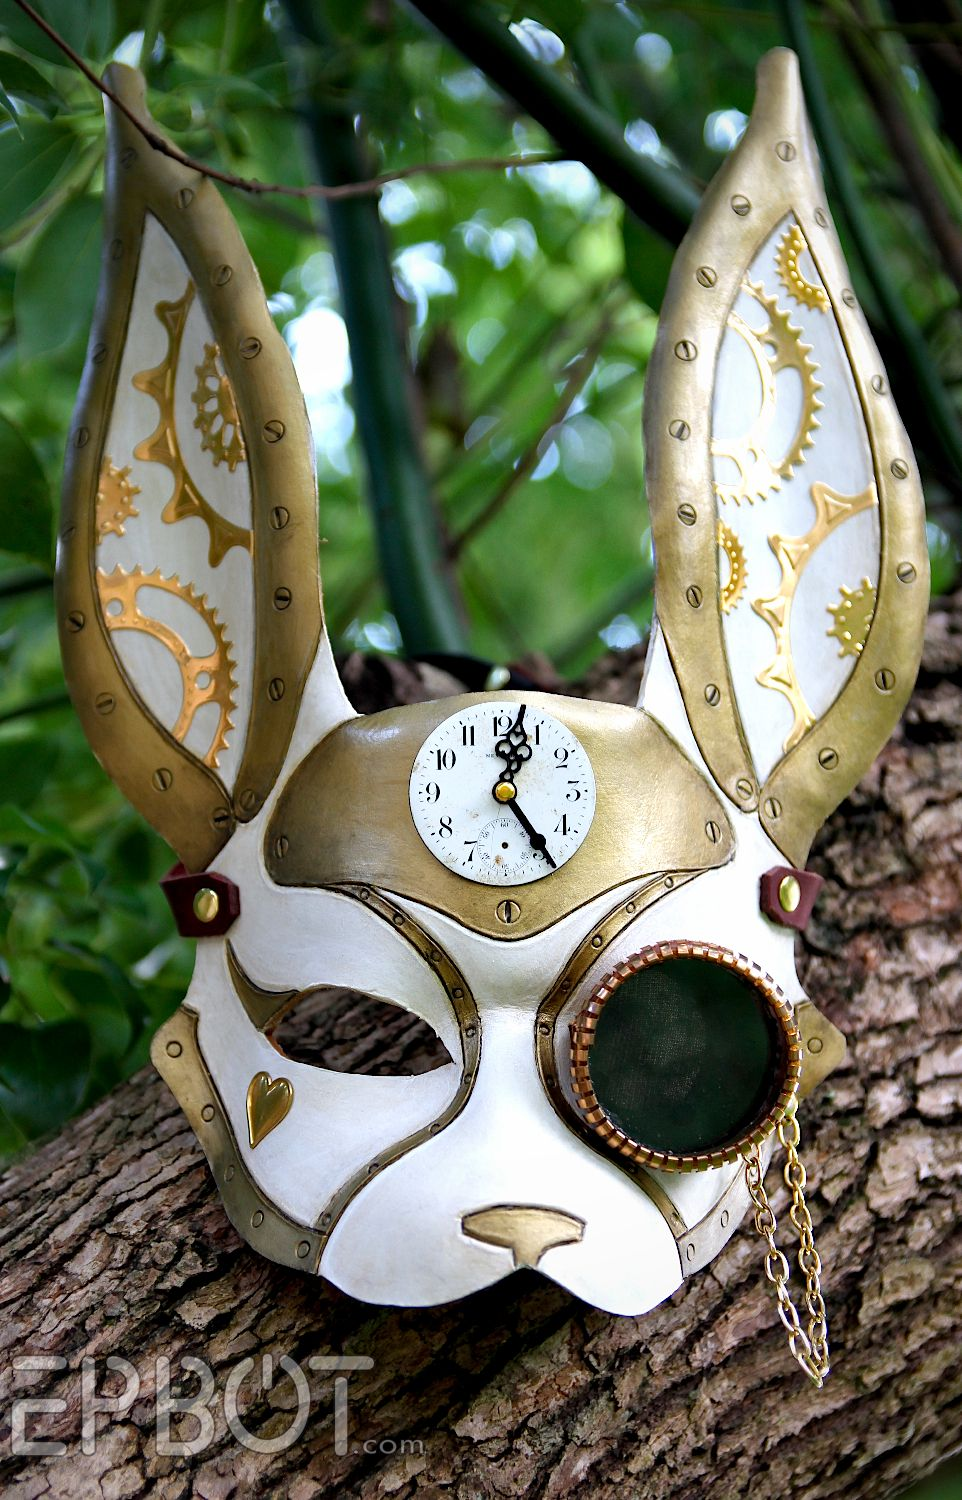 Here is the DIY link on DIY Alice in Wonderland Steampunk White Rabbit Mask Tutorial from EPBOT here.  http://www.epbot.com/2013/06/down-rabbit-hole-my-next-cosplay-project.html